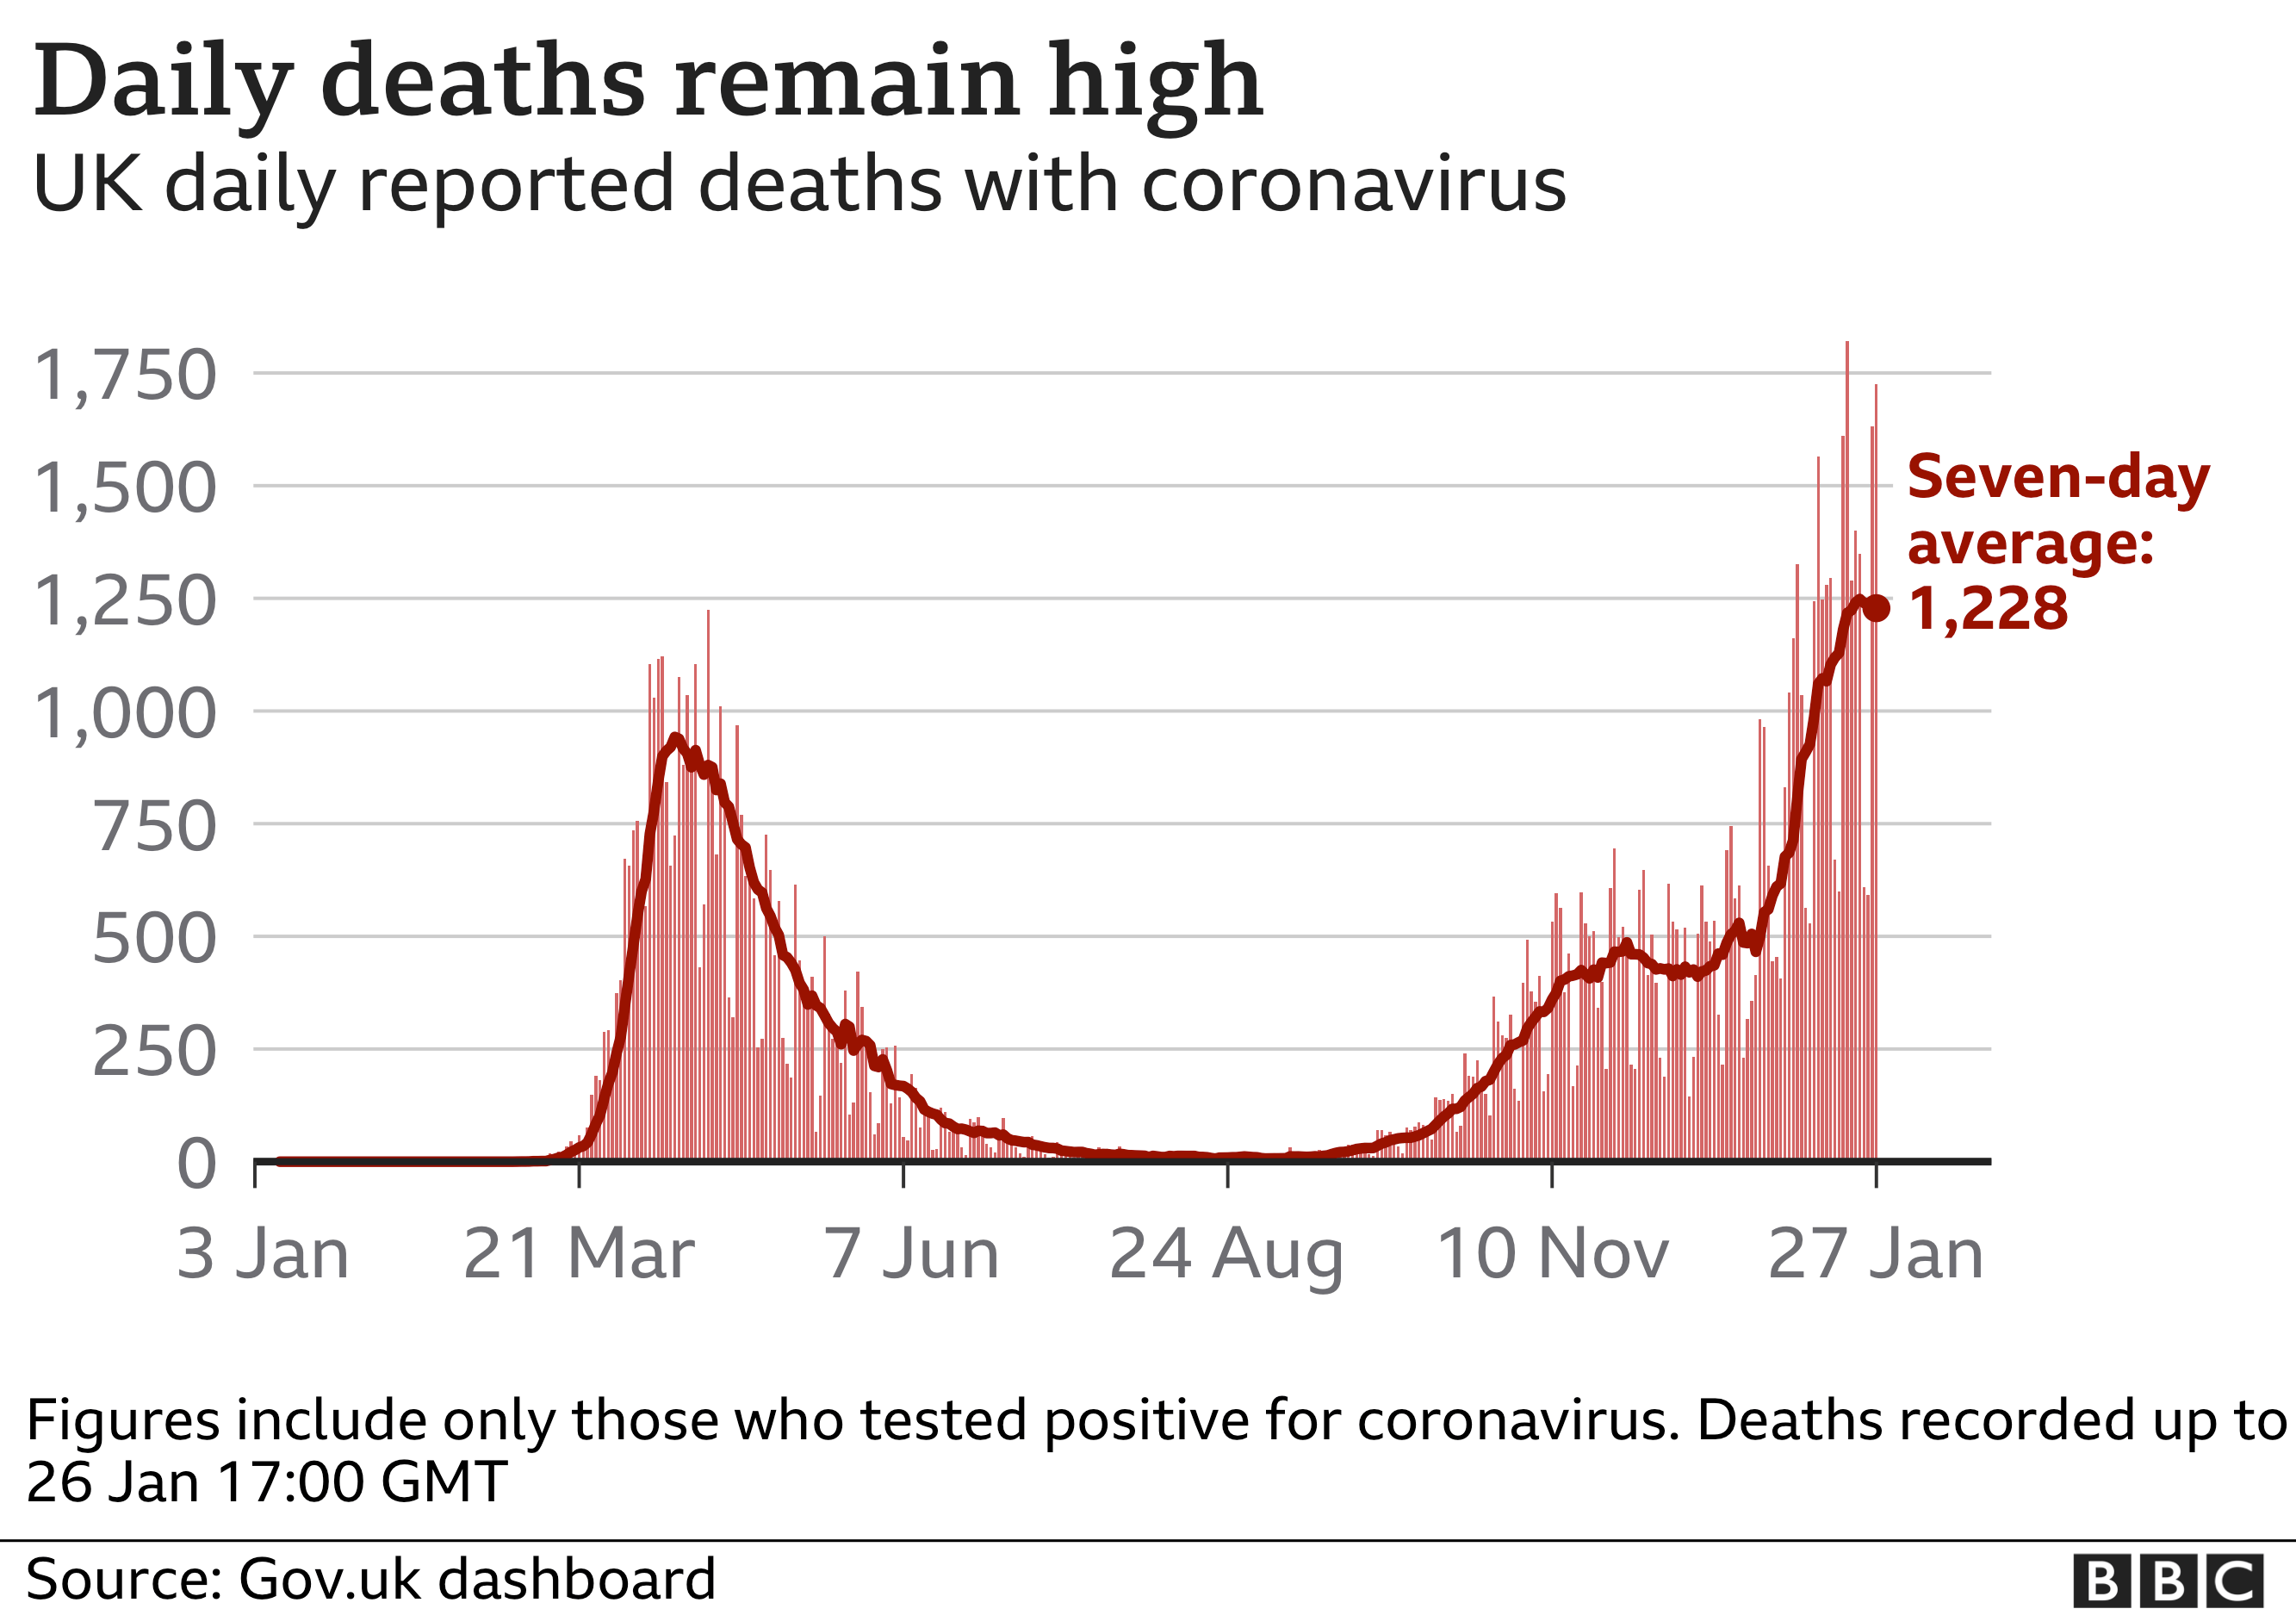 Chart showing daily deaths remain high